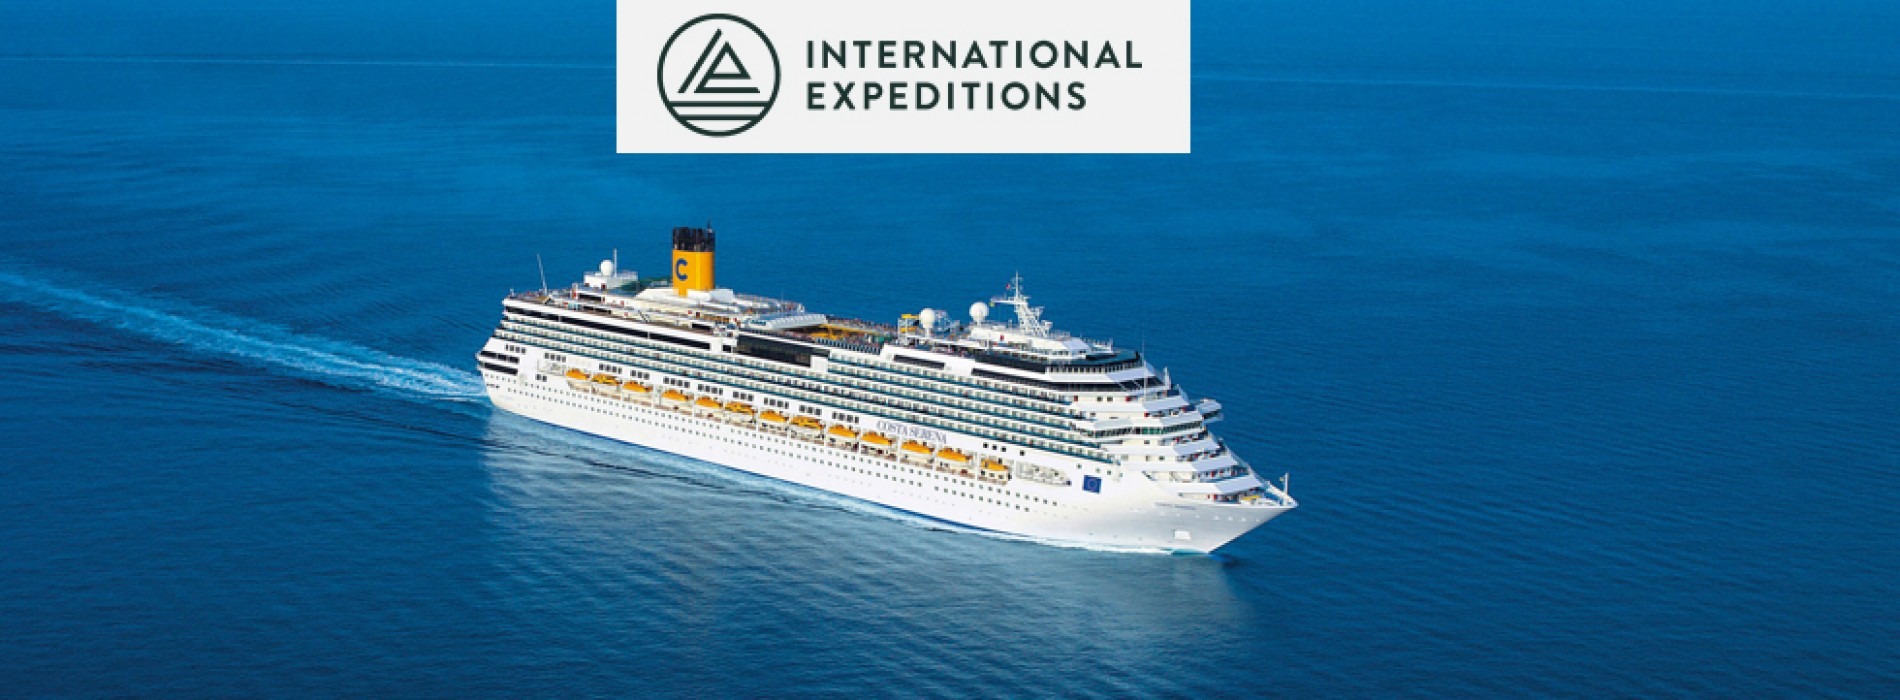 International Expeditions offers India cruise-tour